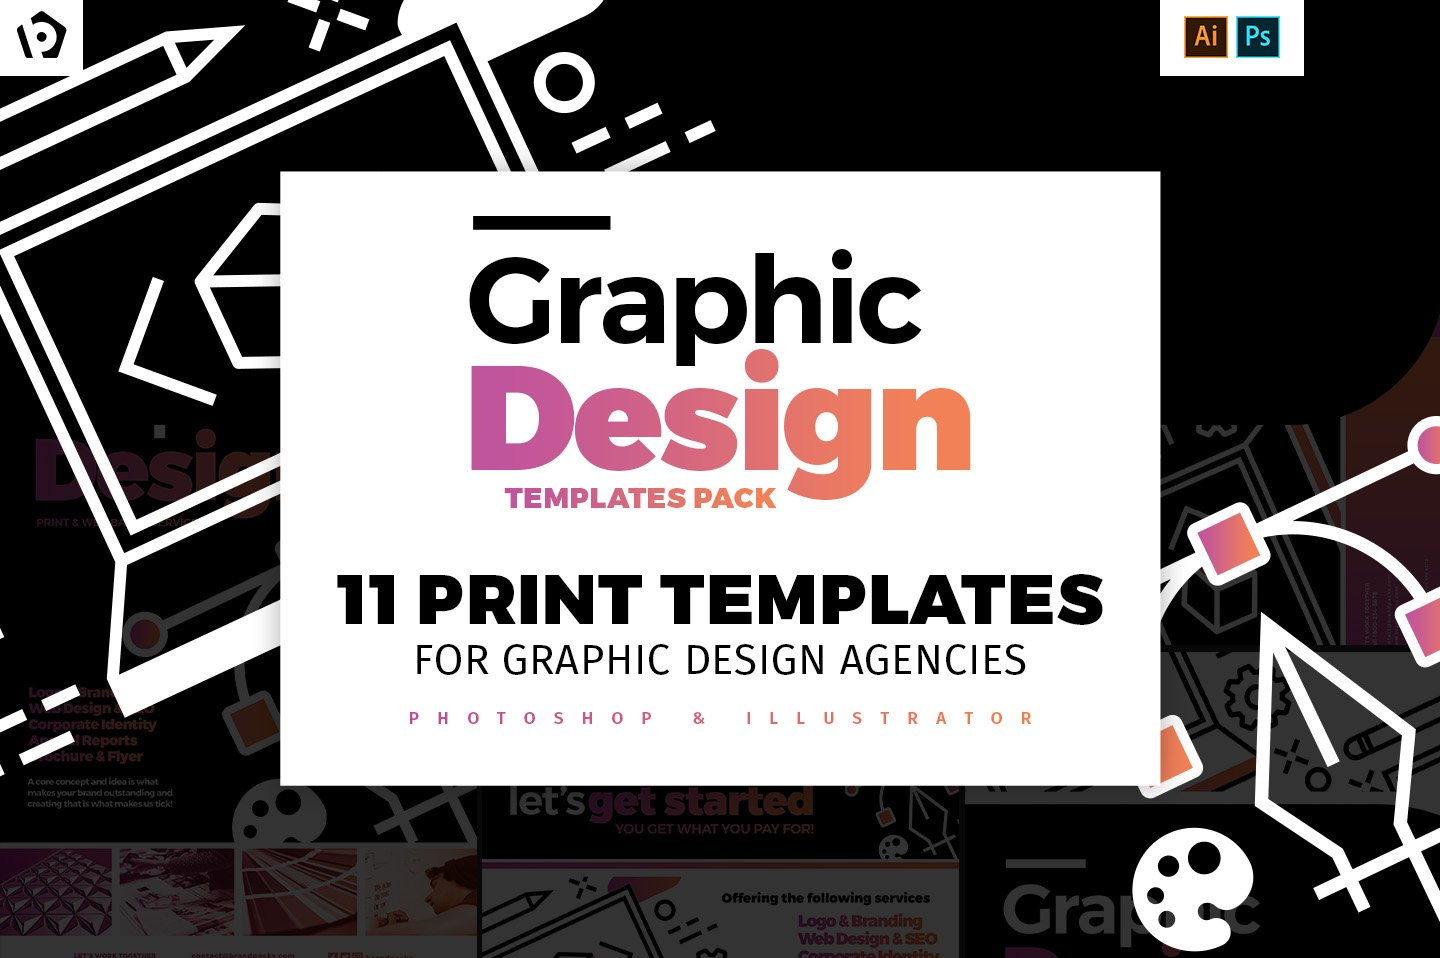 Graphic design agency templates pack flyer templates for Graphic design agency